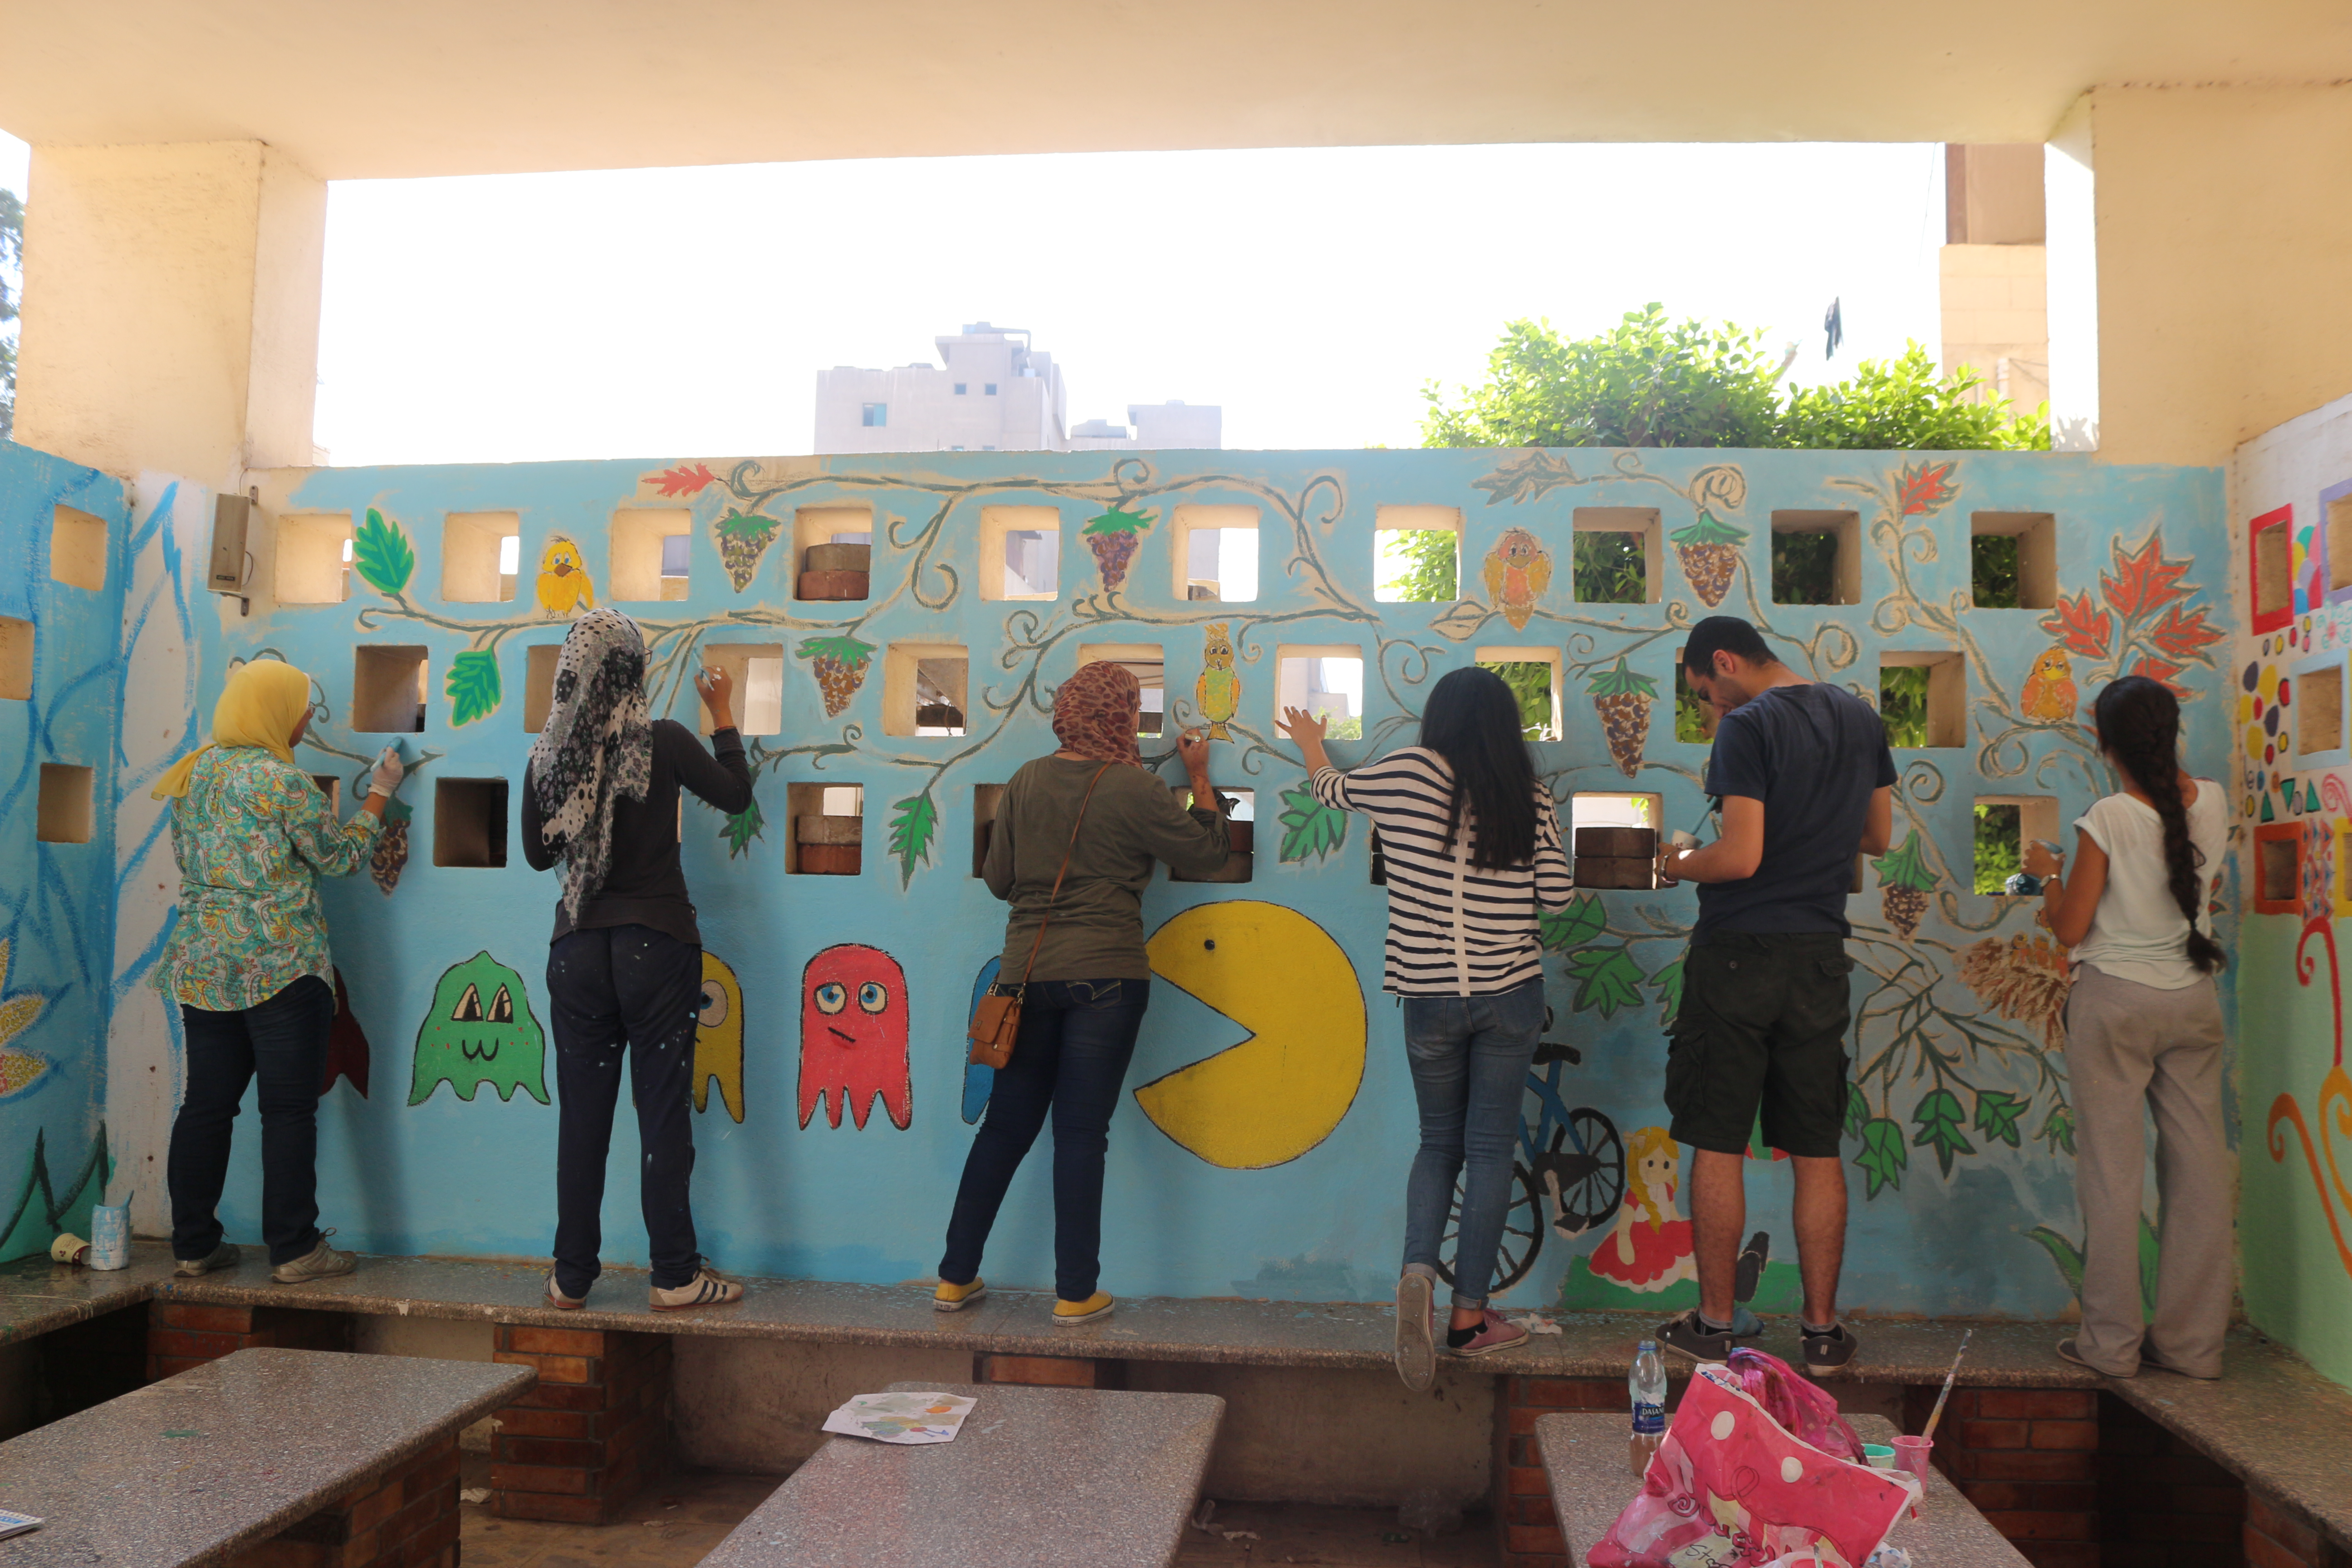 Volunteers add colours and drawings to the walls that the children see during their stay at the hospital (Leena ElDeeb)